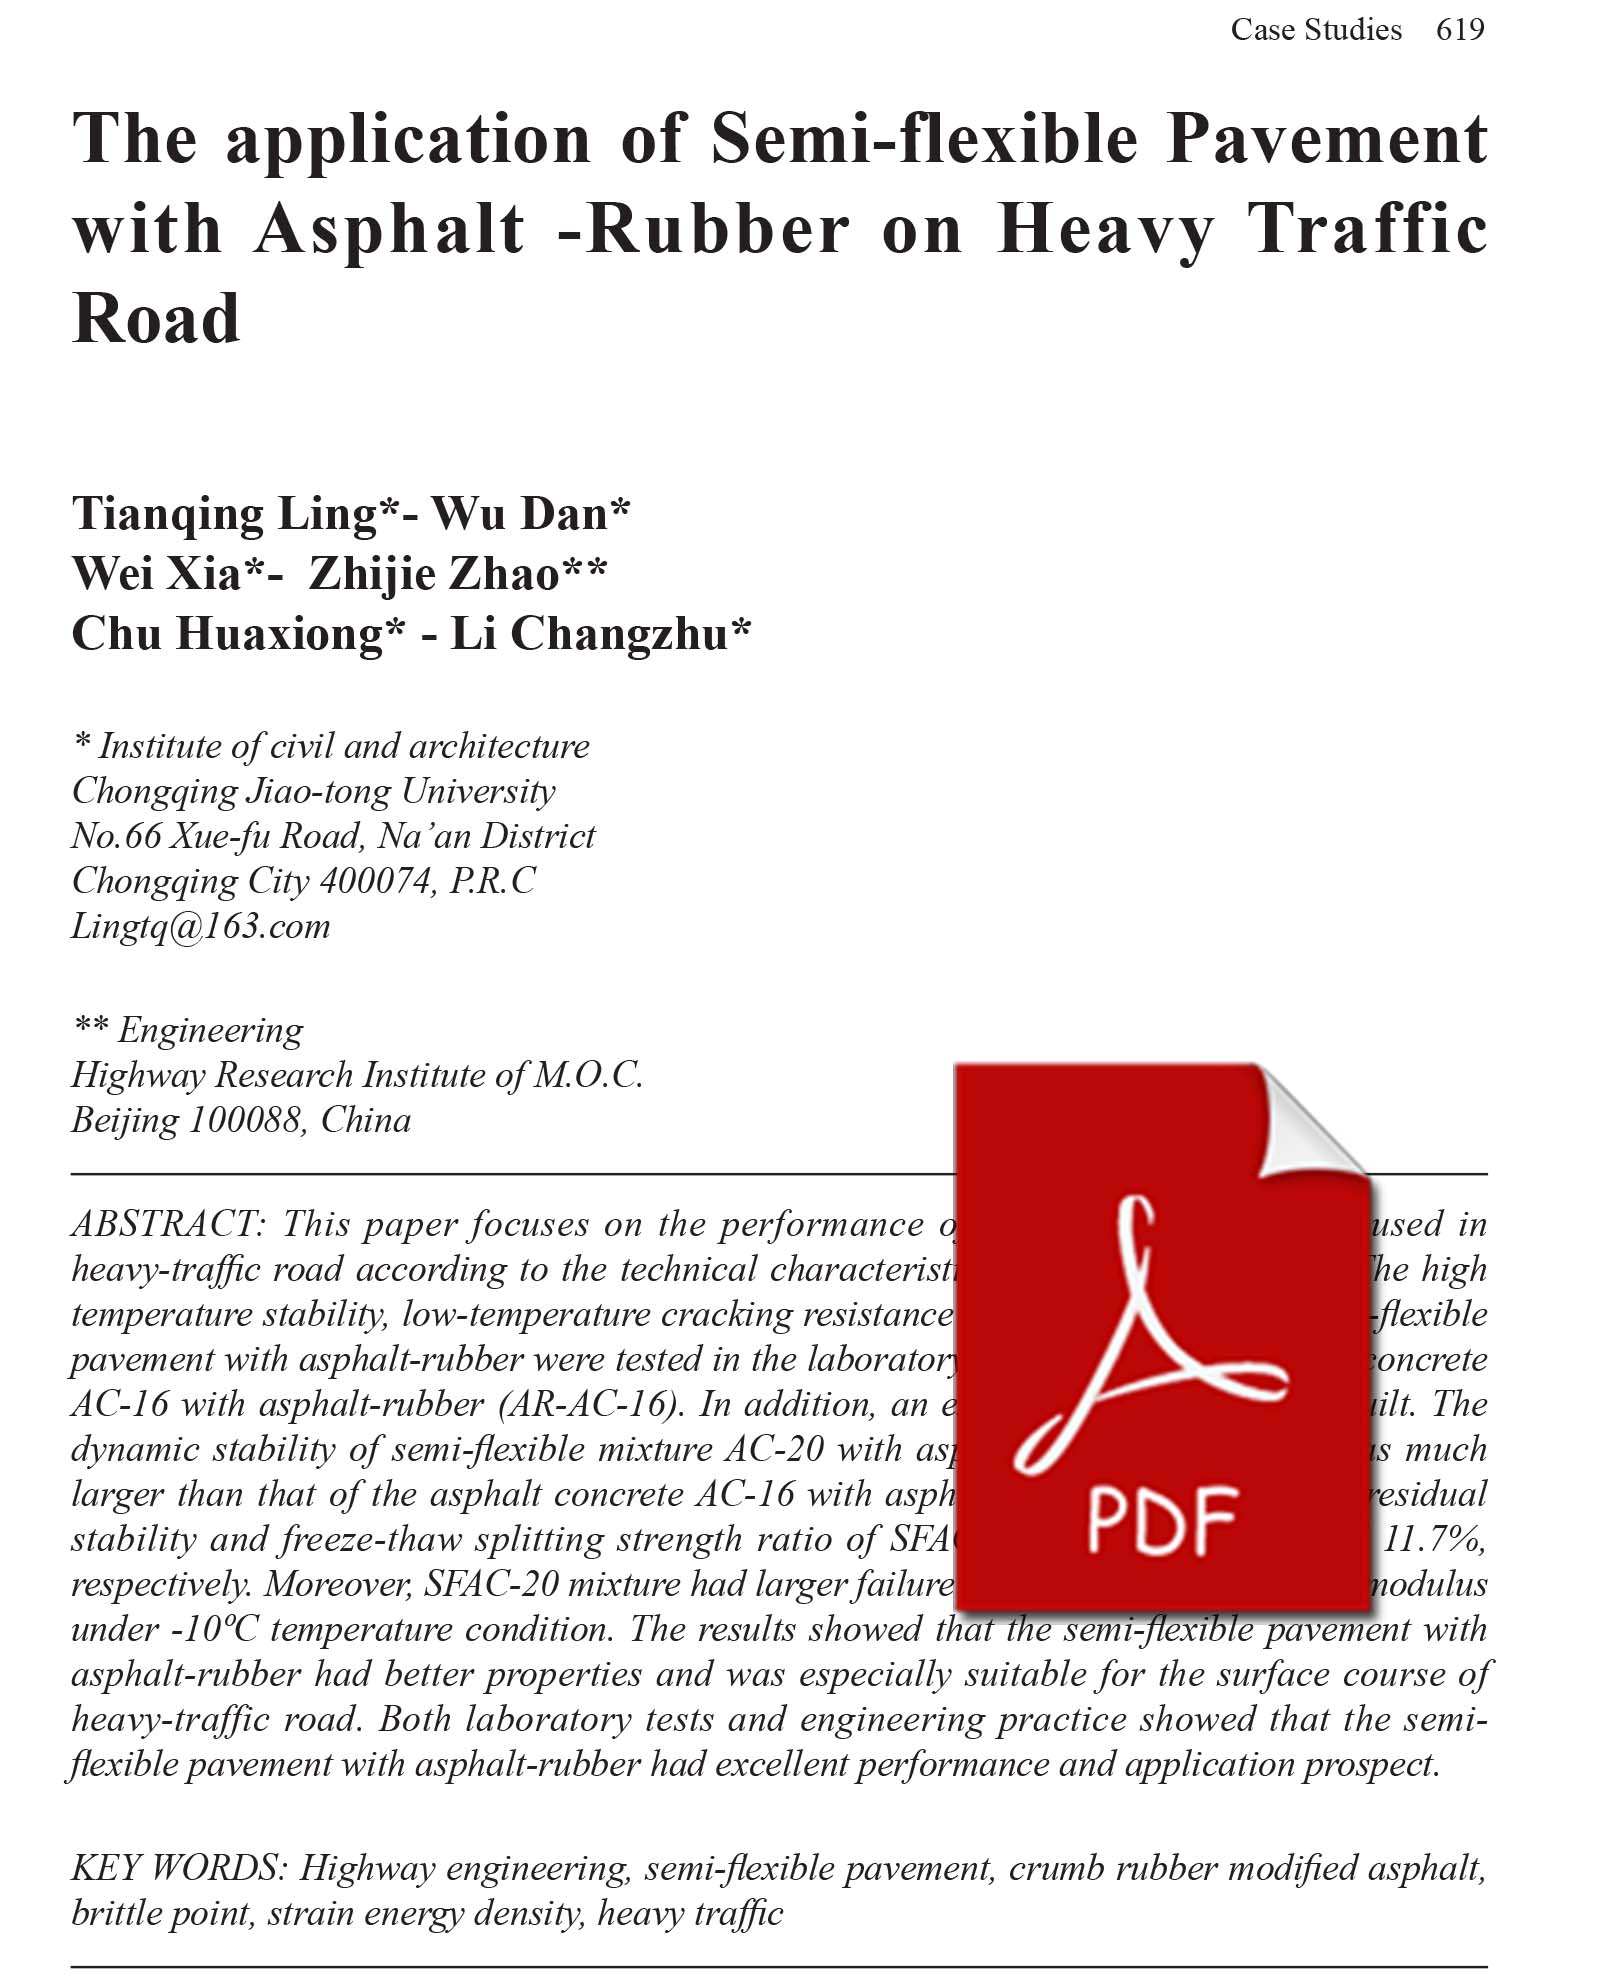 038 The Lication Of Semi Flexible Pavement With Asphalt